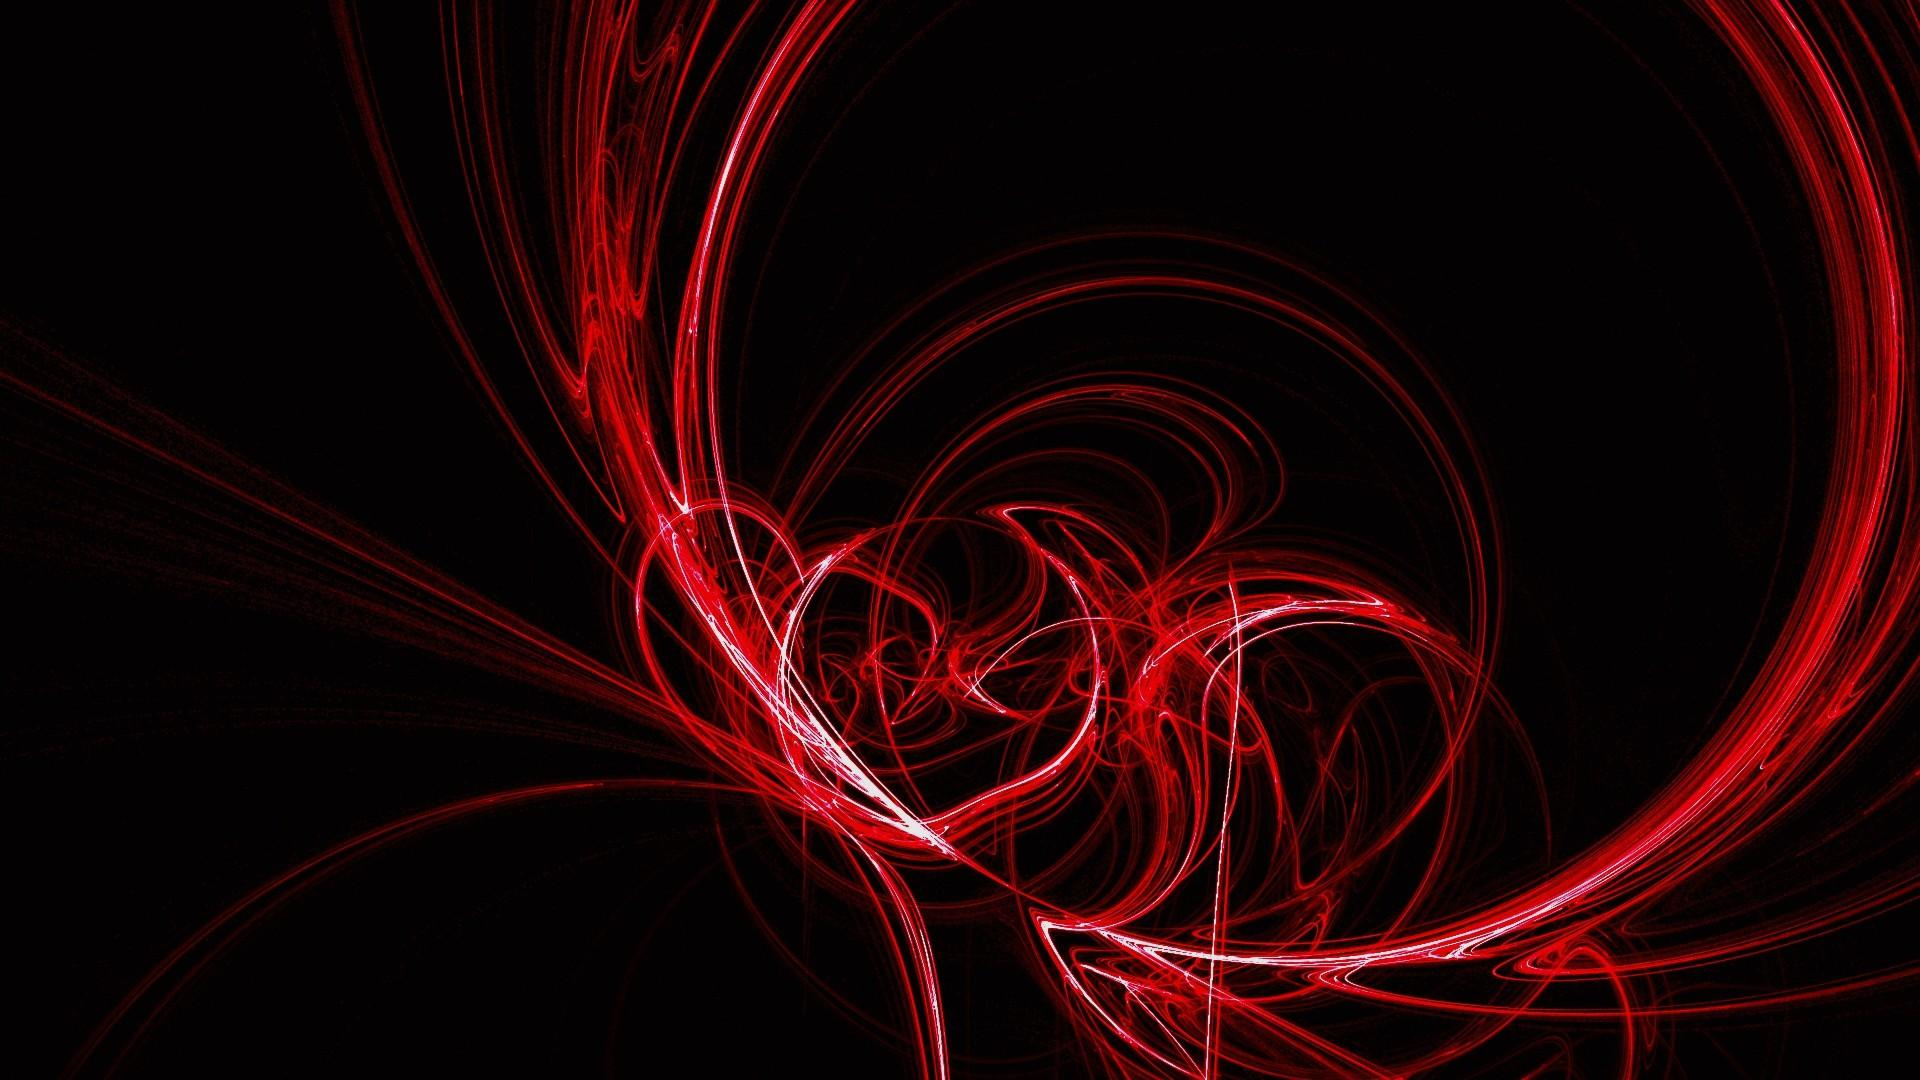 red wallpapers hd backgrounds, images, pics, photos free download